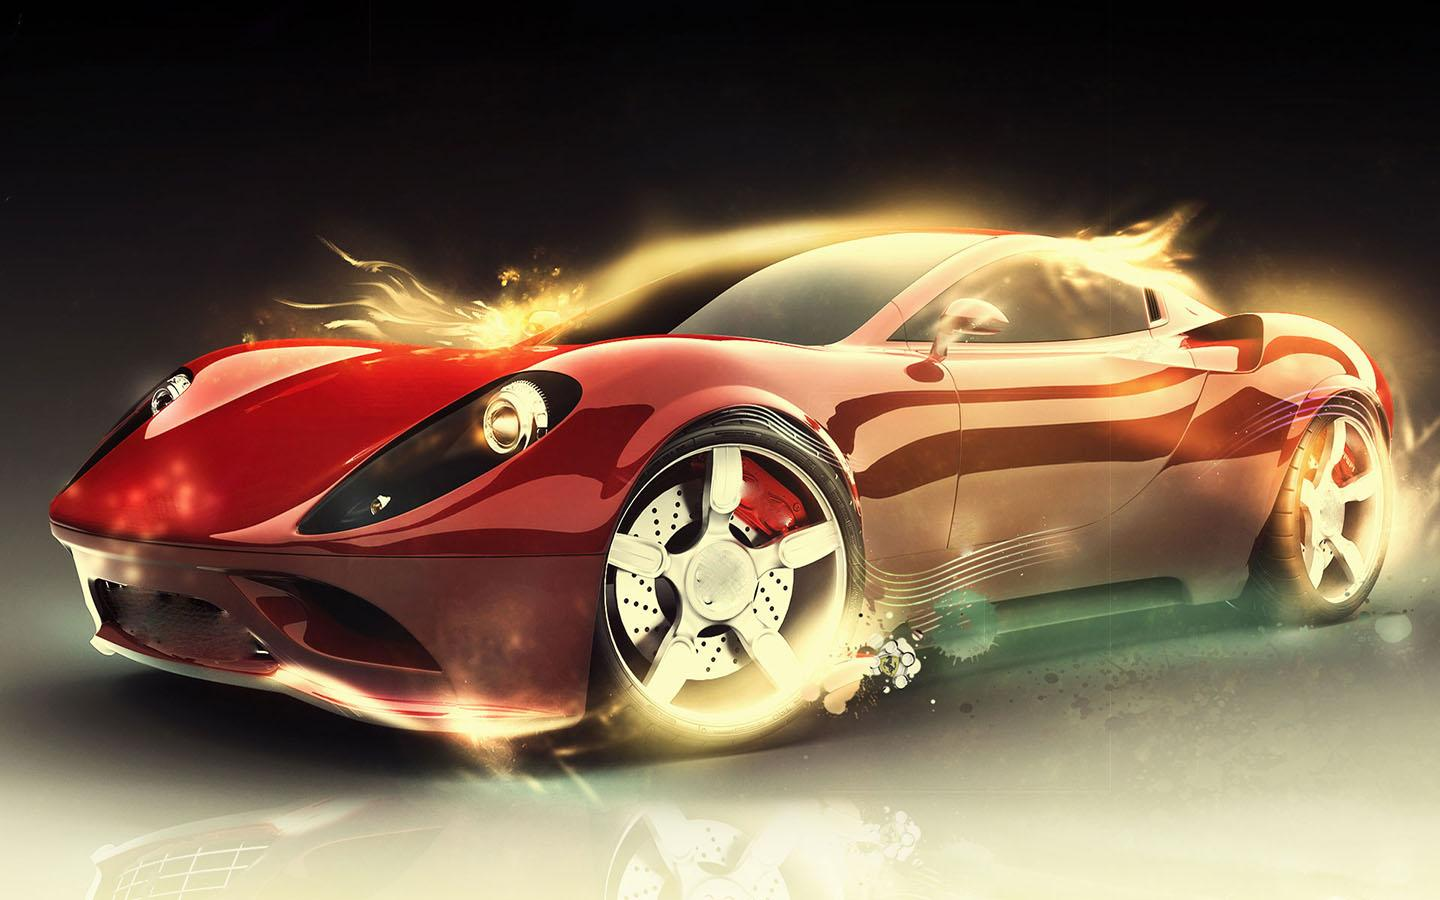 car wallpaper 1.01 apk download - android personalization apps